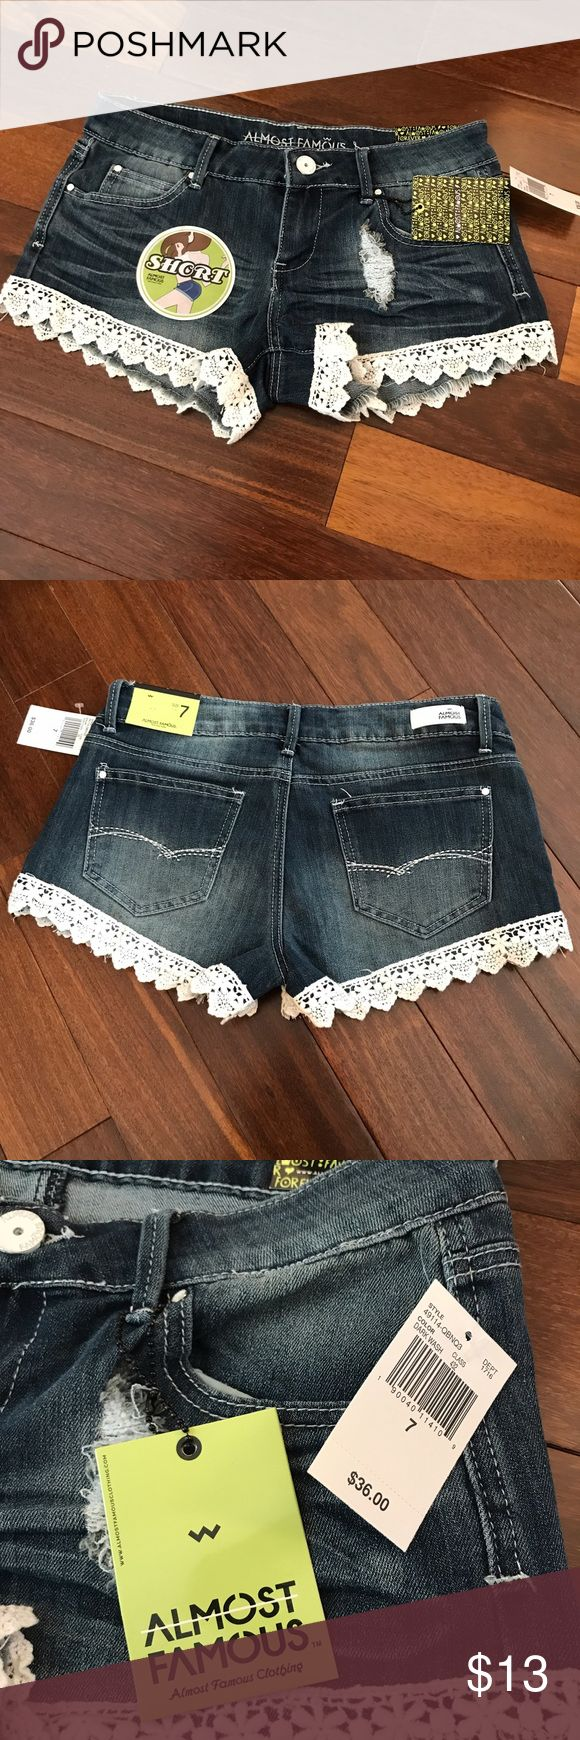 Almost Famous lace hem shorts Almost Famous lace hem shorts. New with tags. Made of 67% cotton,32% polyester and 1% spandex. Size 7. Almost Famous Shorts Jean Shorts